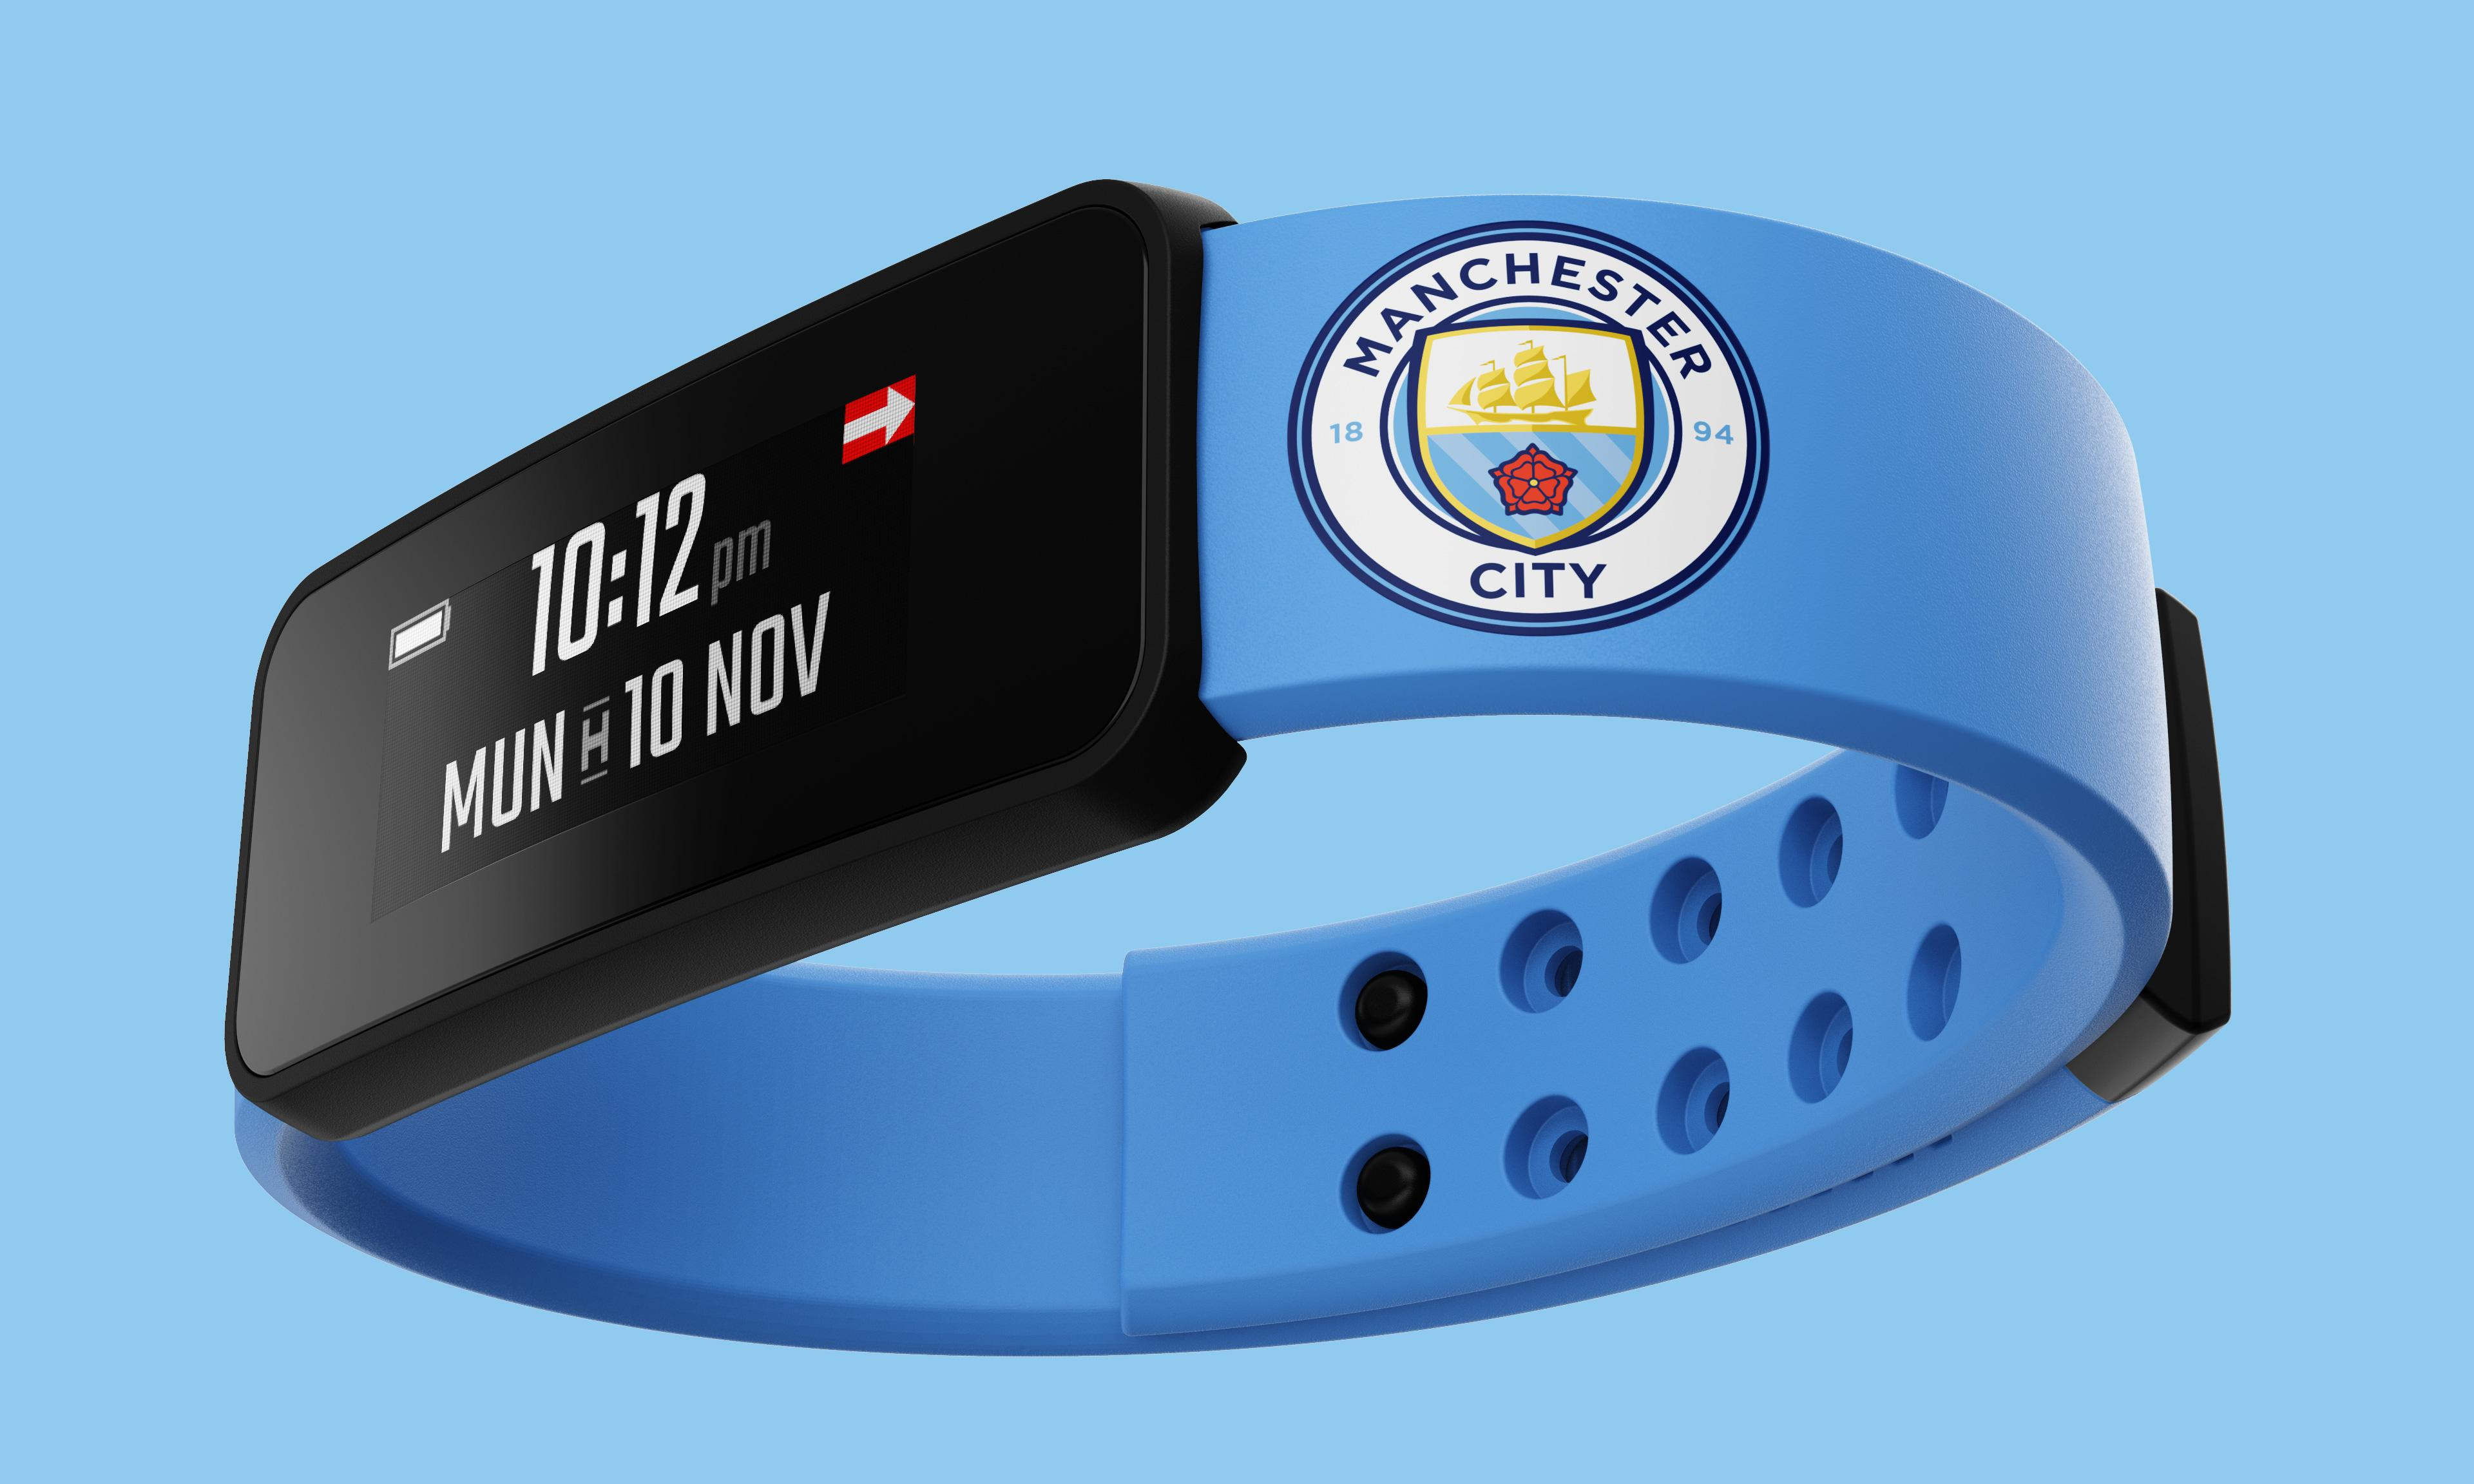 Manchester City's smart band of gold seems to have scrambled fans' minds